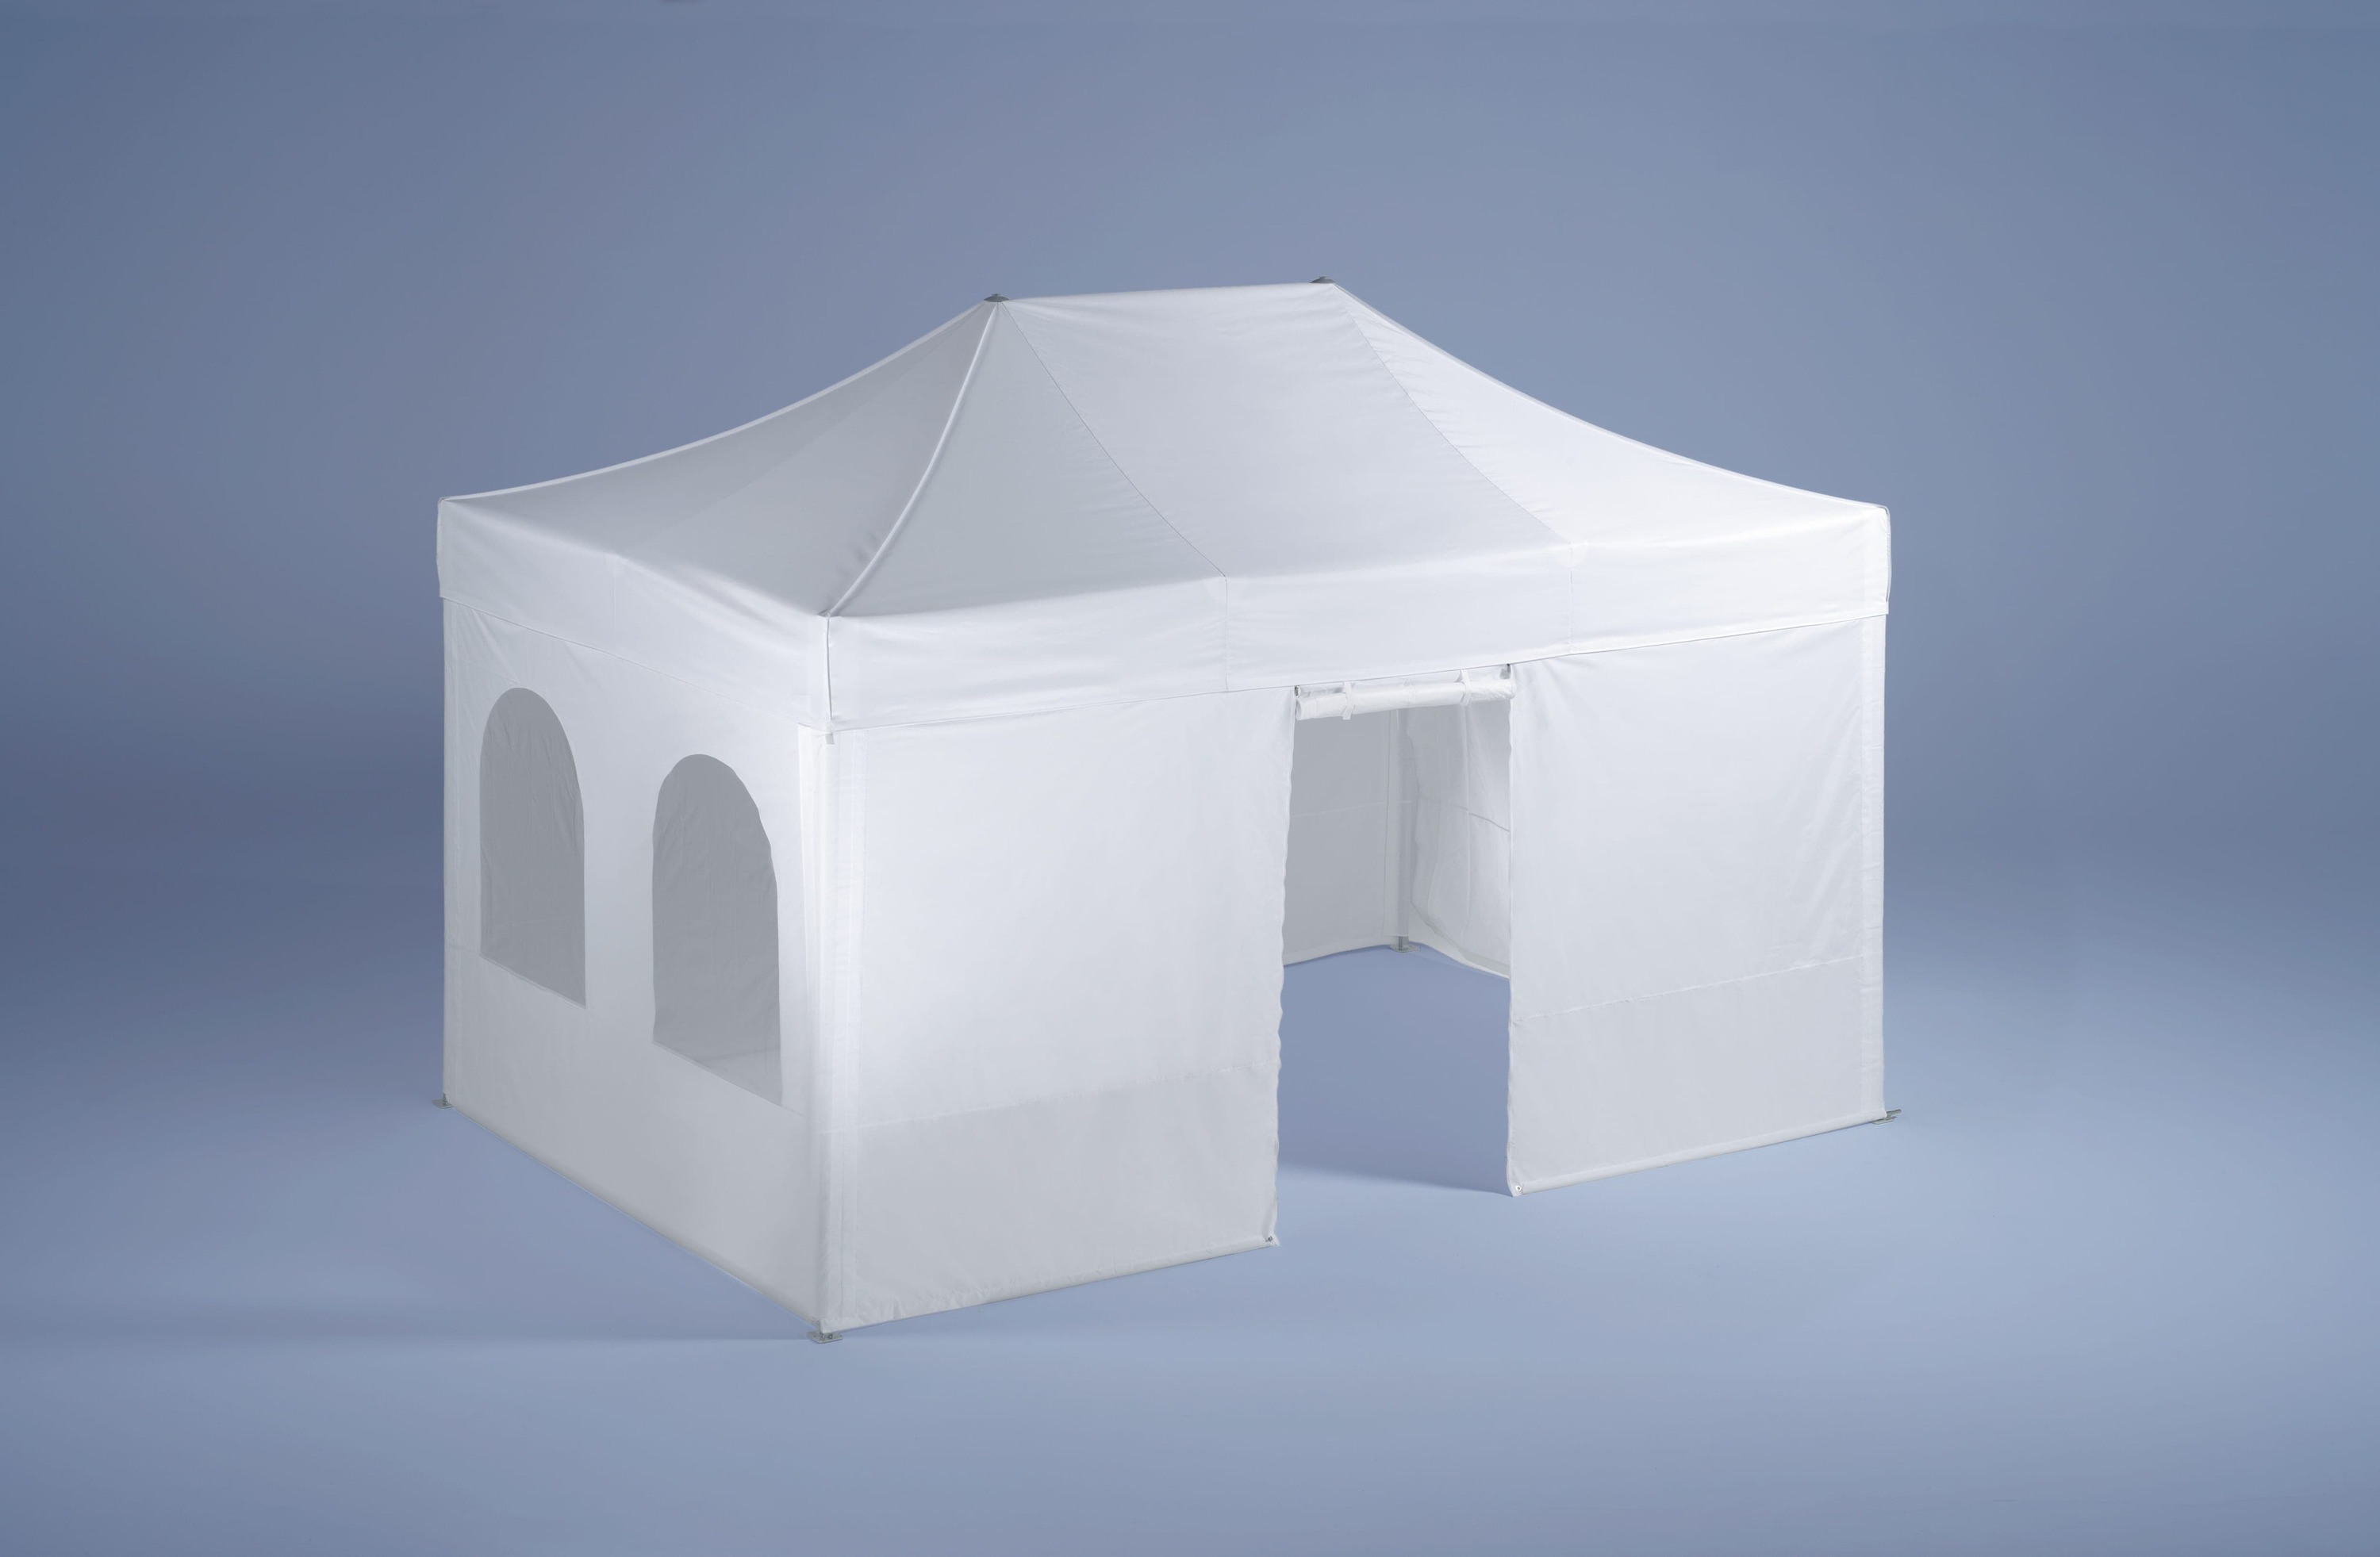 <p>Accessories – Walls</p> <p>Half and Full Height</p> <p>The walls are made of polyester and are fastened using Velcro fasteners. Promotional information can be printed on their entire surface. The walls can be full providing more printing surface, or they can include elegant cathedral windows. They can include a door, closed with a zipper, from inside and out, and can also be rolled up and fastened using Velcro fasteners. The wall can be half-height secured in place with a crossbar.</p>